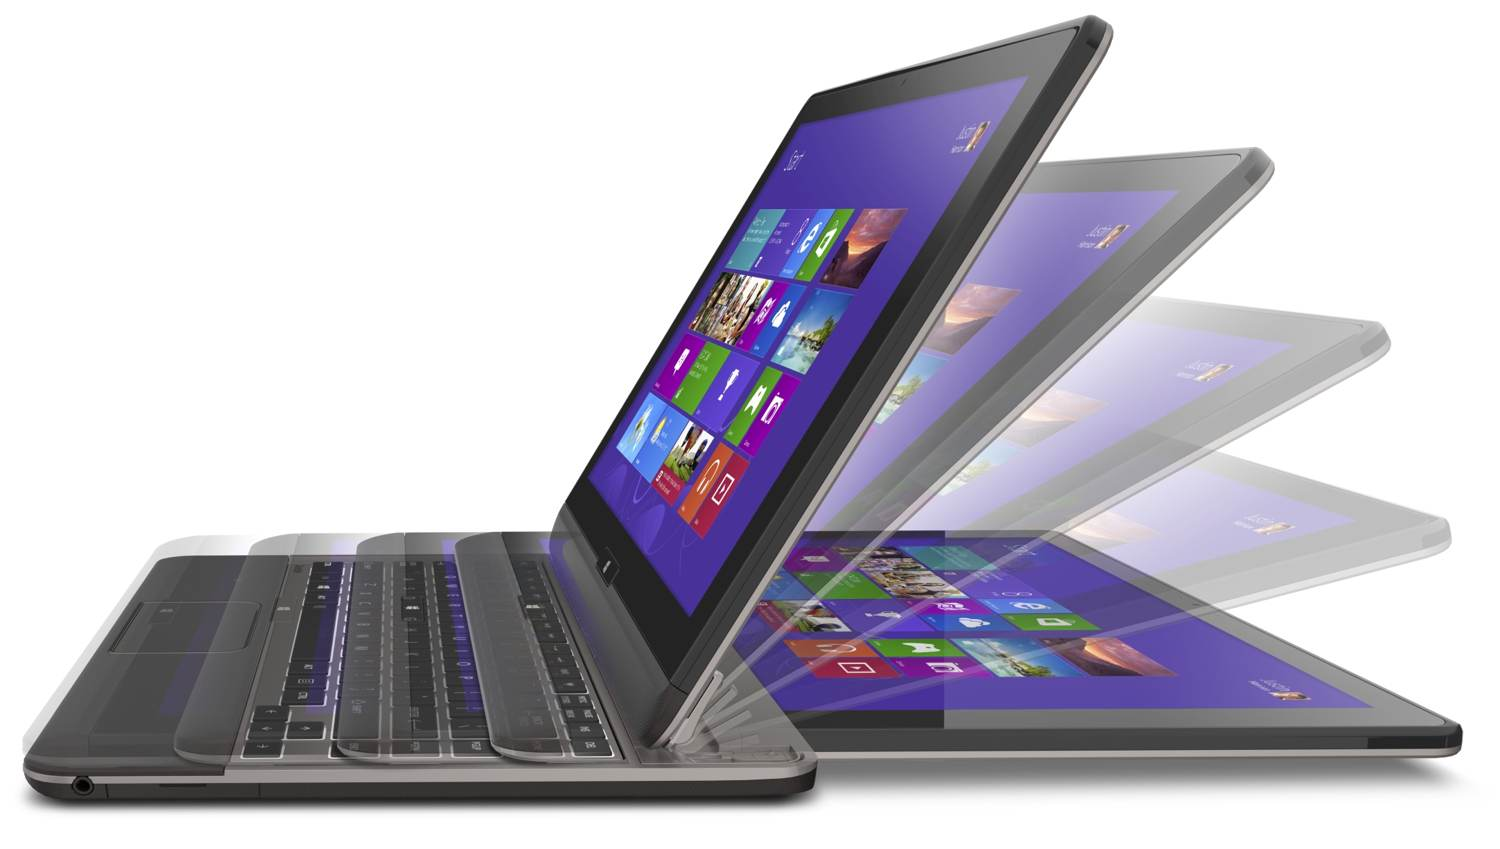 toshiba-12q4-U925T-tablet-transform-lg